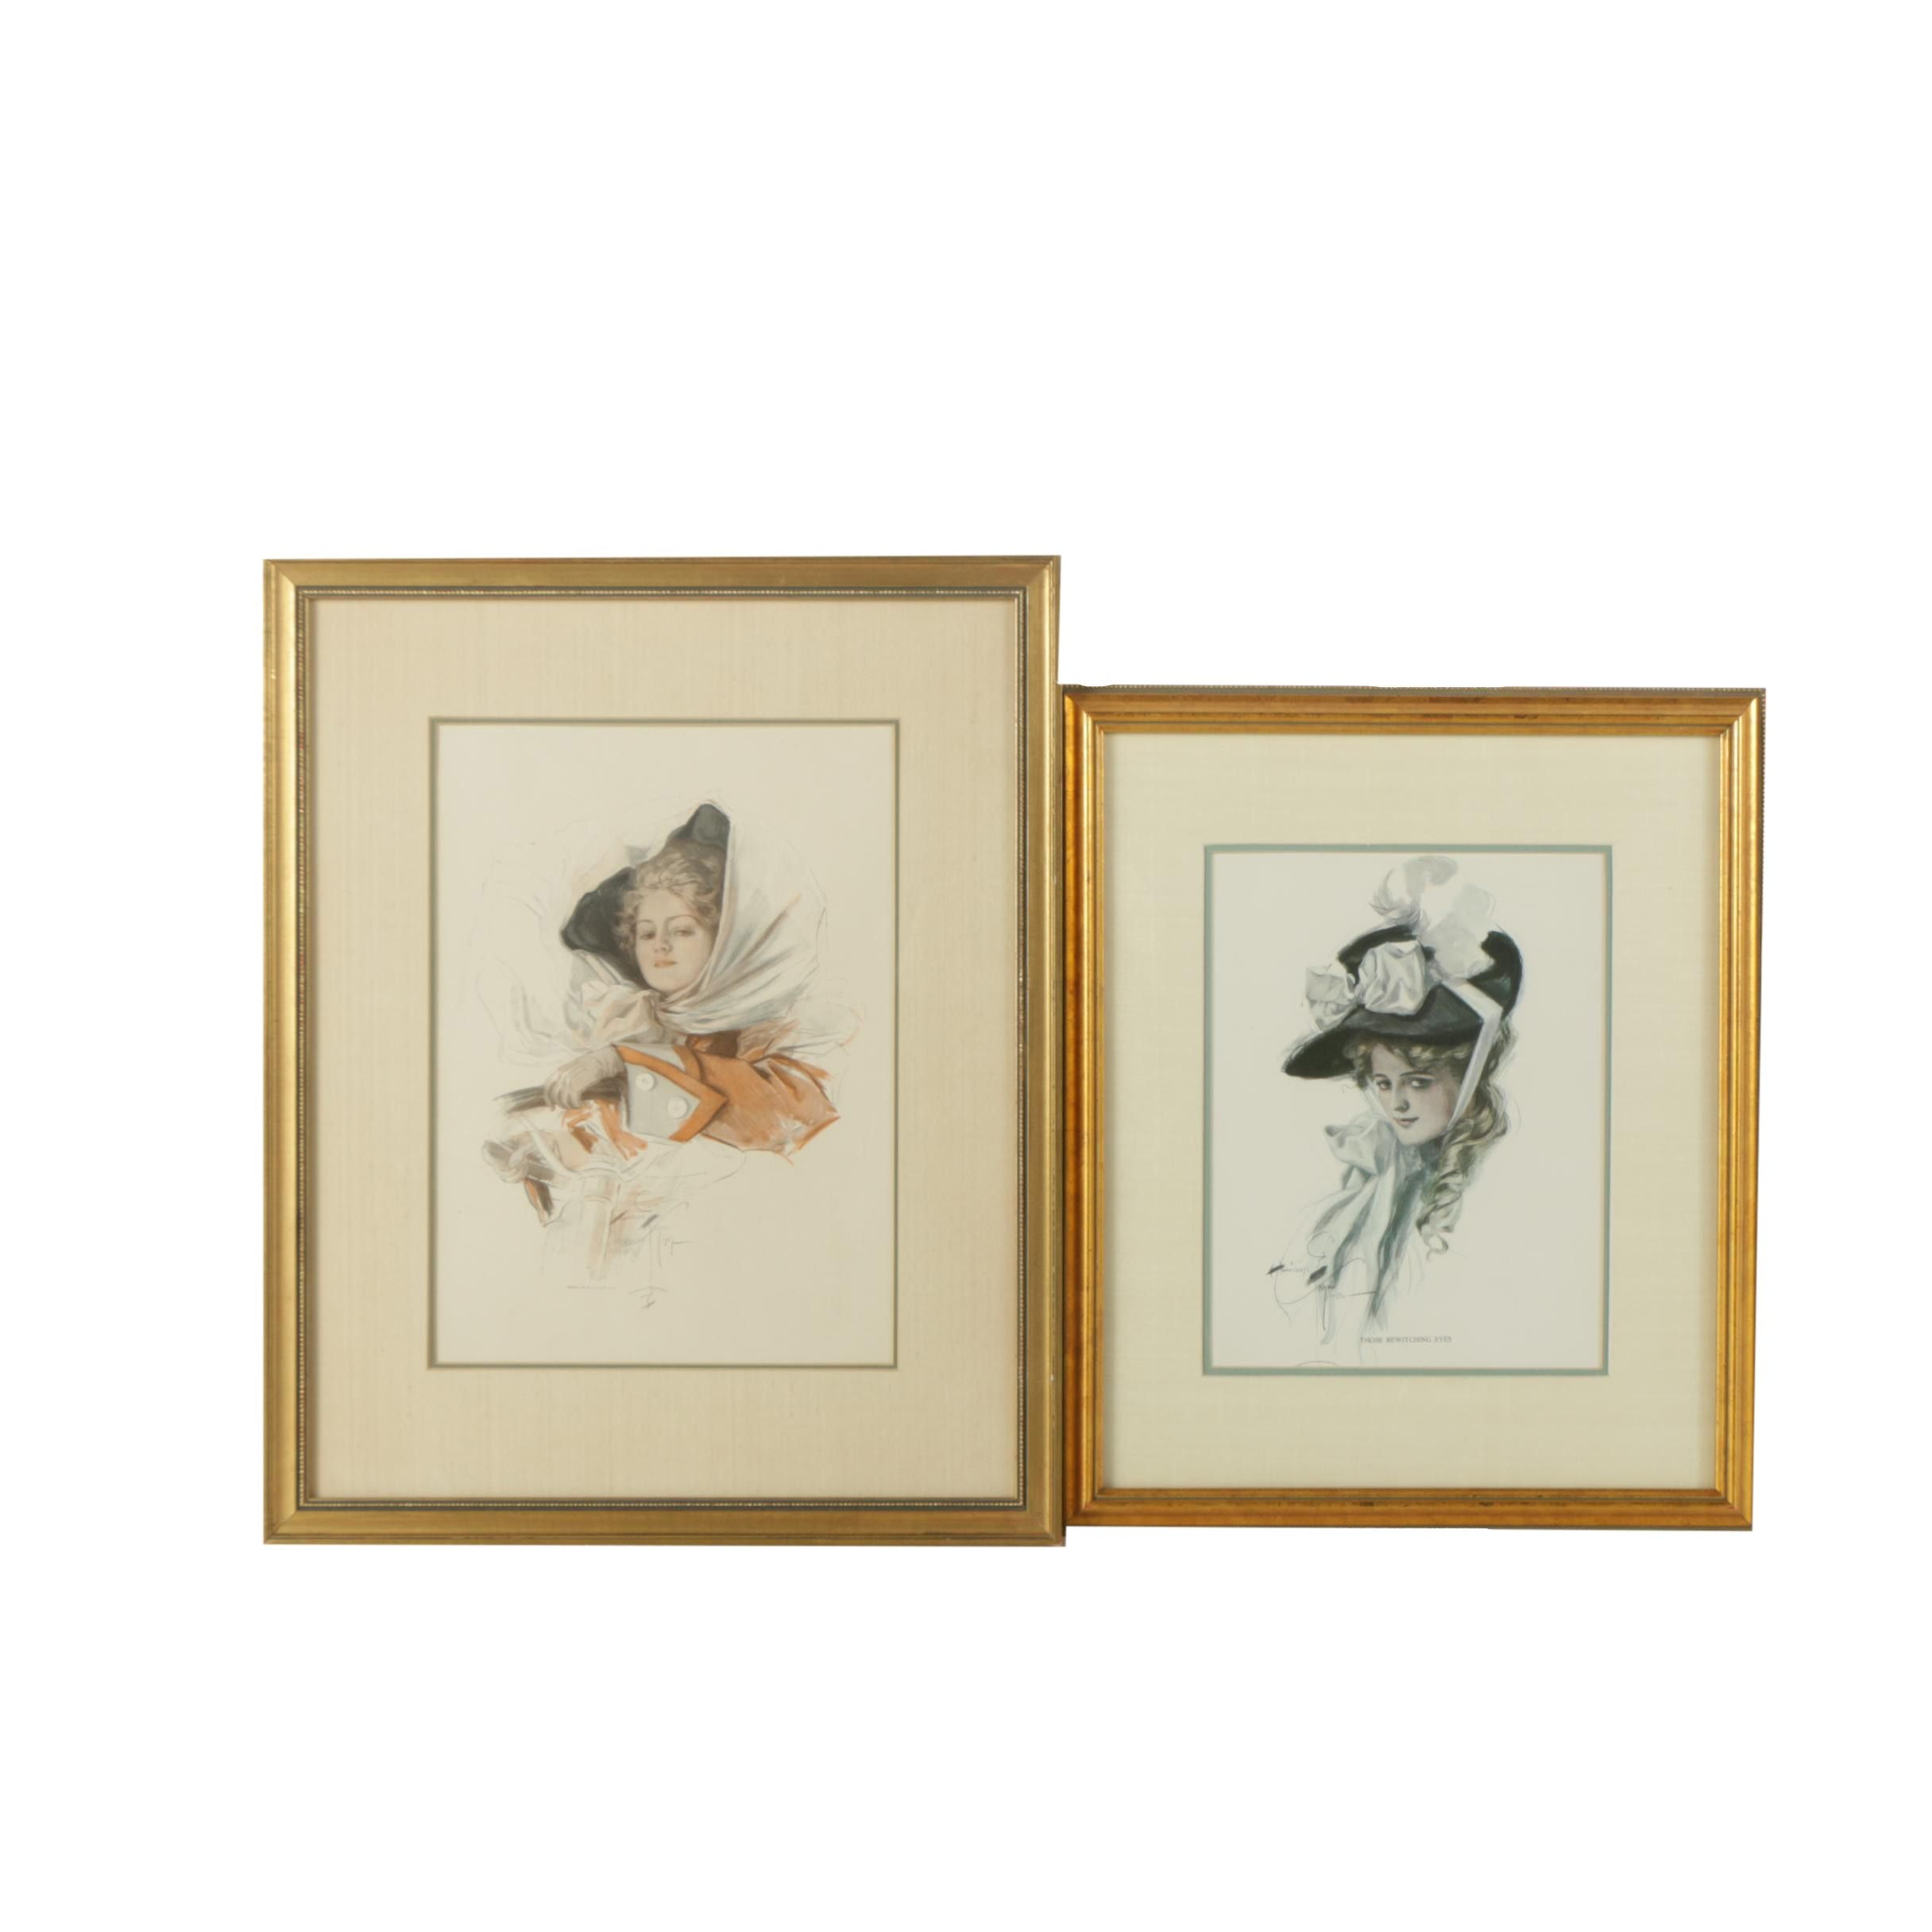 Pair of Offset Lithographs on Paper After Harrison Fisher